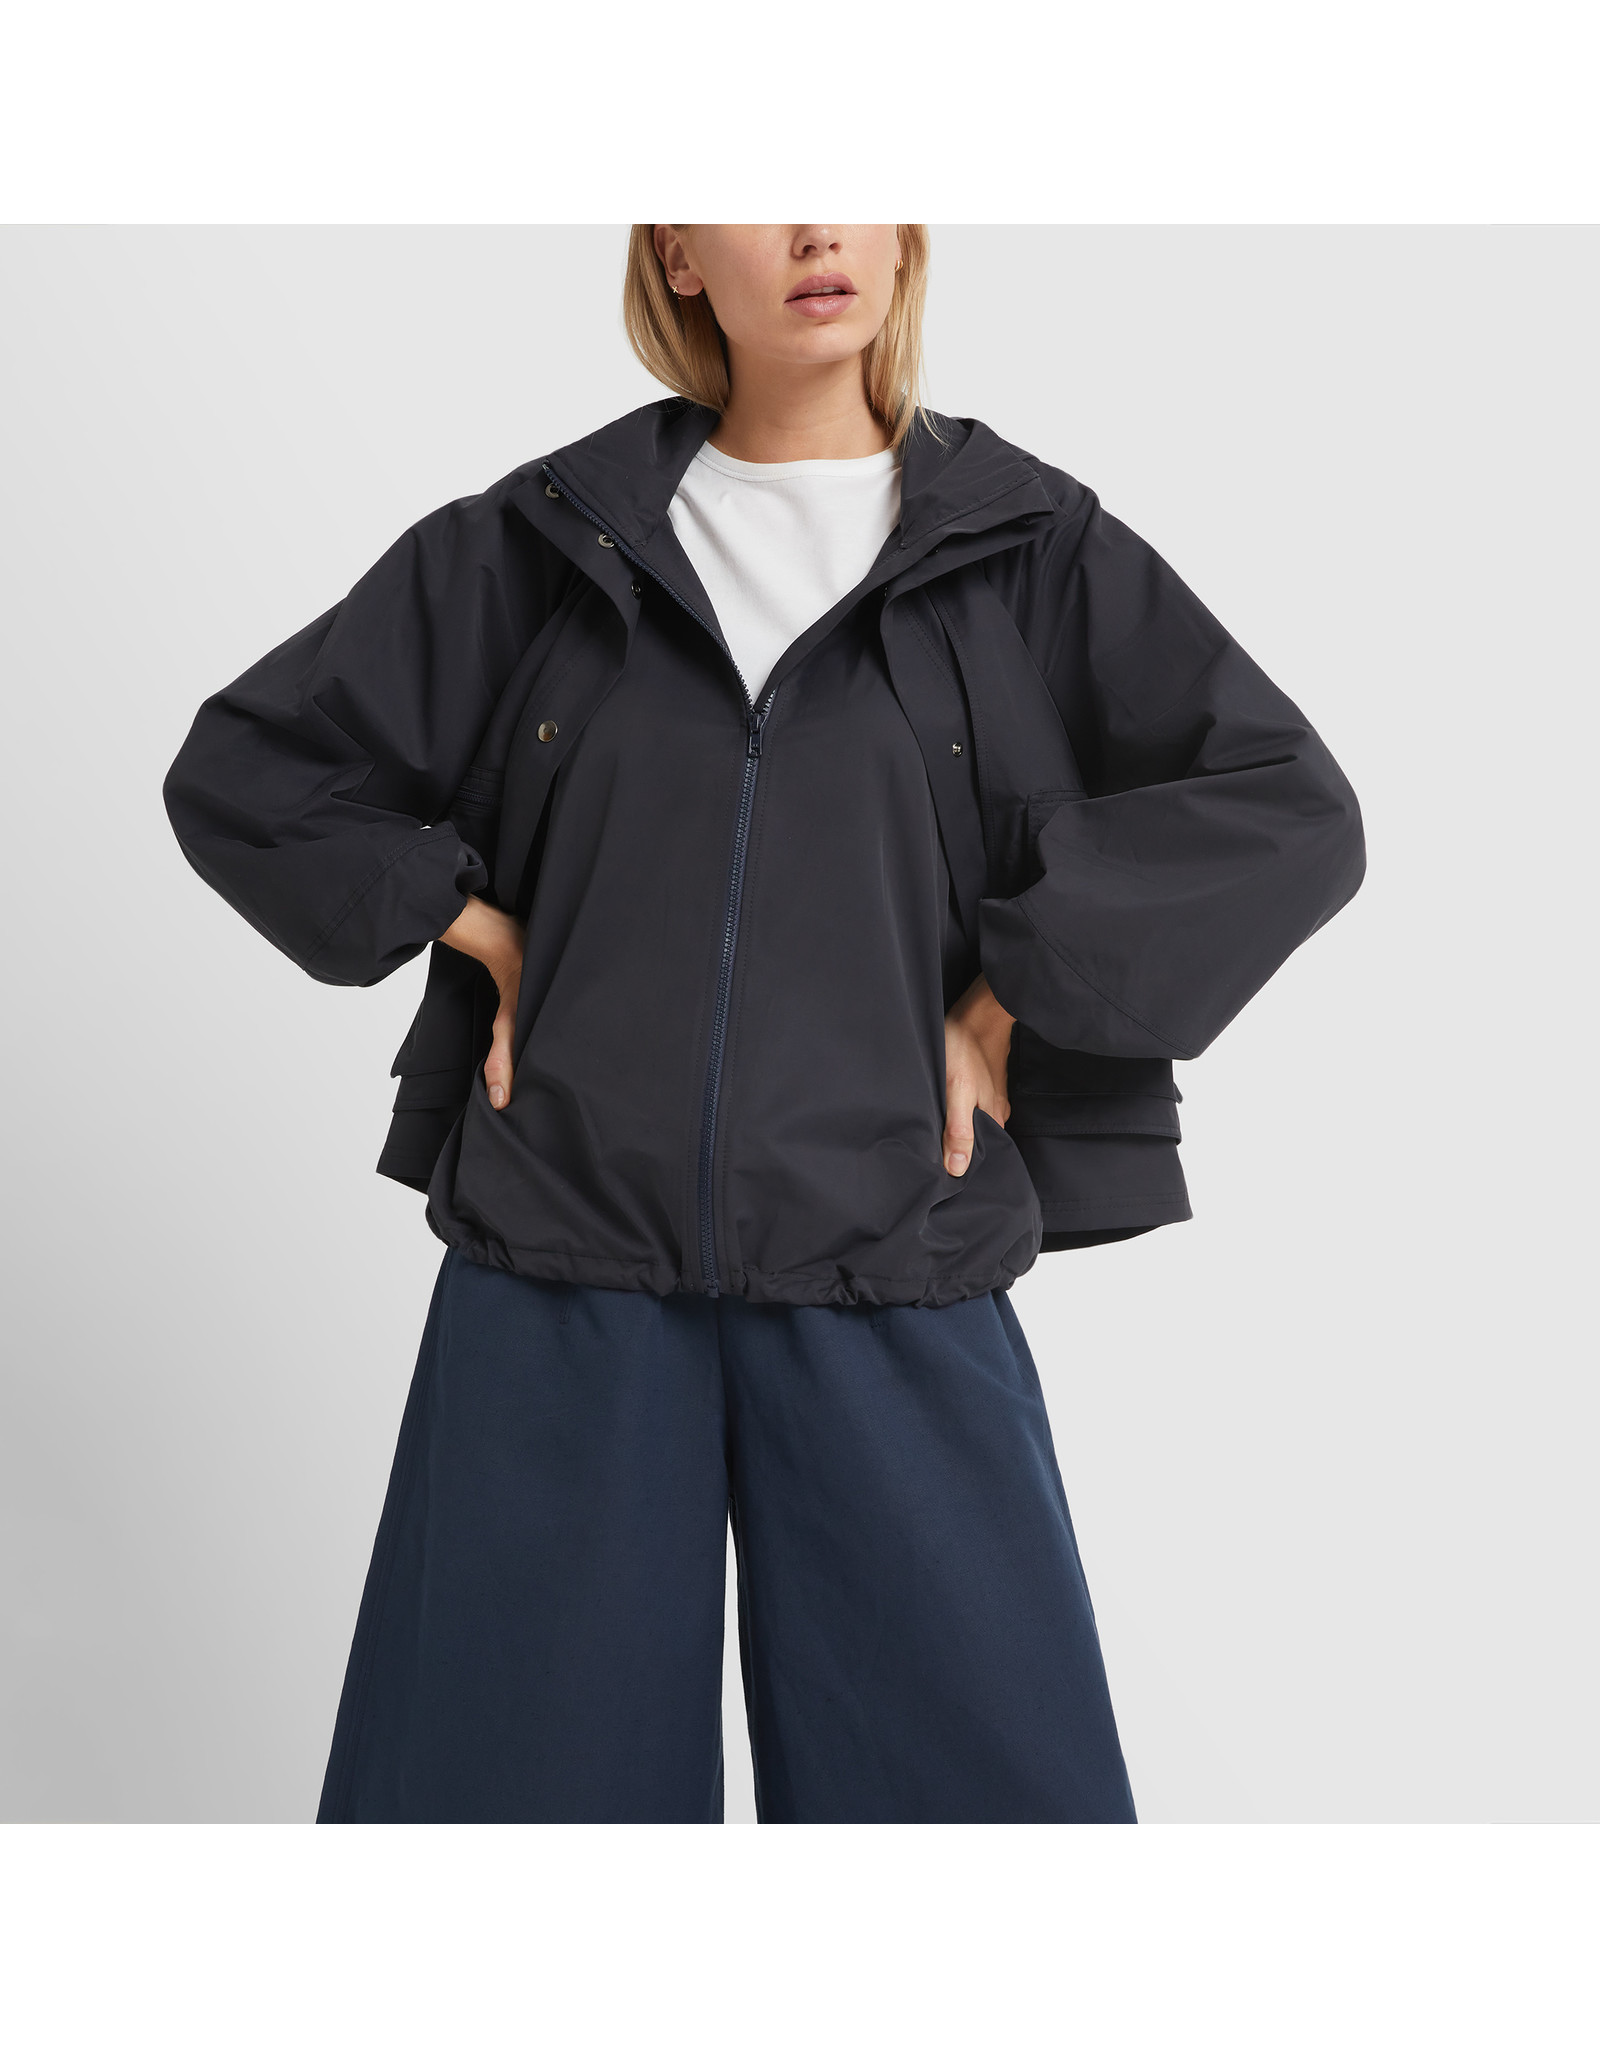 G. Label G. Label Carolyn Utility Performance Jacket (Color: Navy, Size: L)